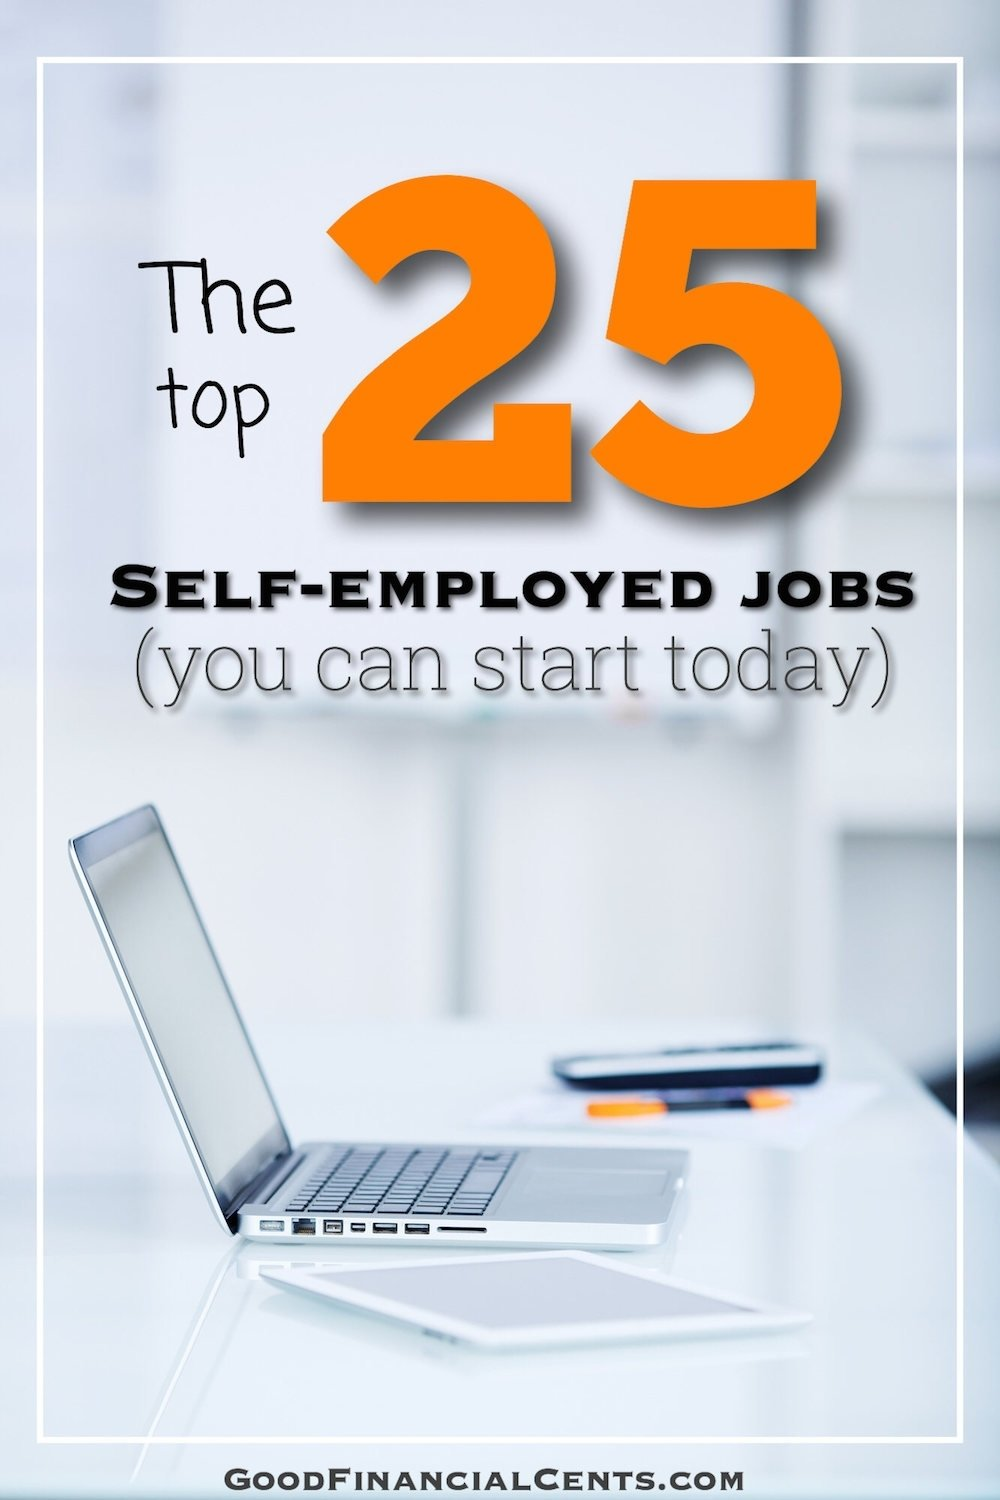 10 Stunning Self Employment Ideas For Men the top 25 best self employed jobs that pay well you can start today 2020